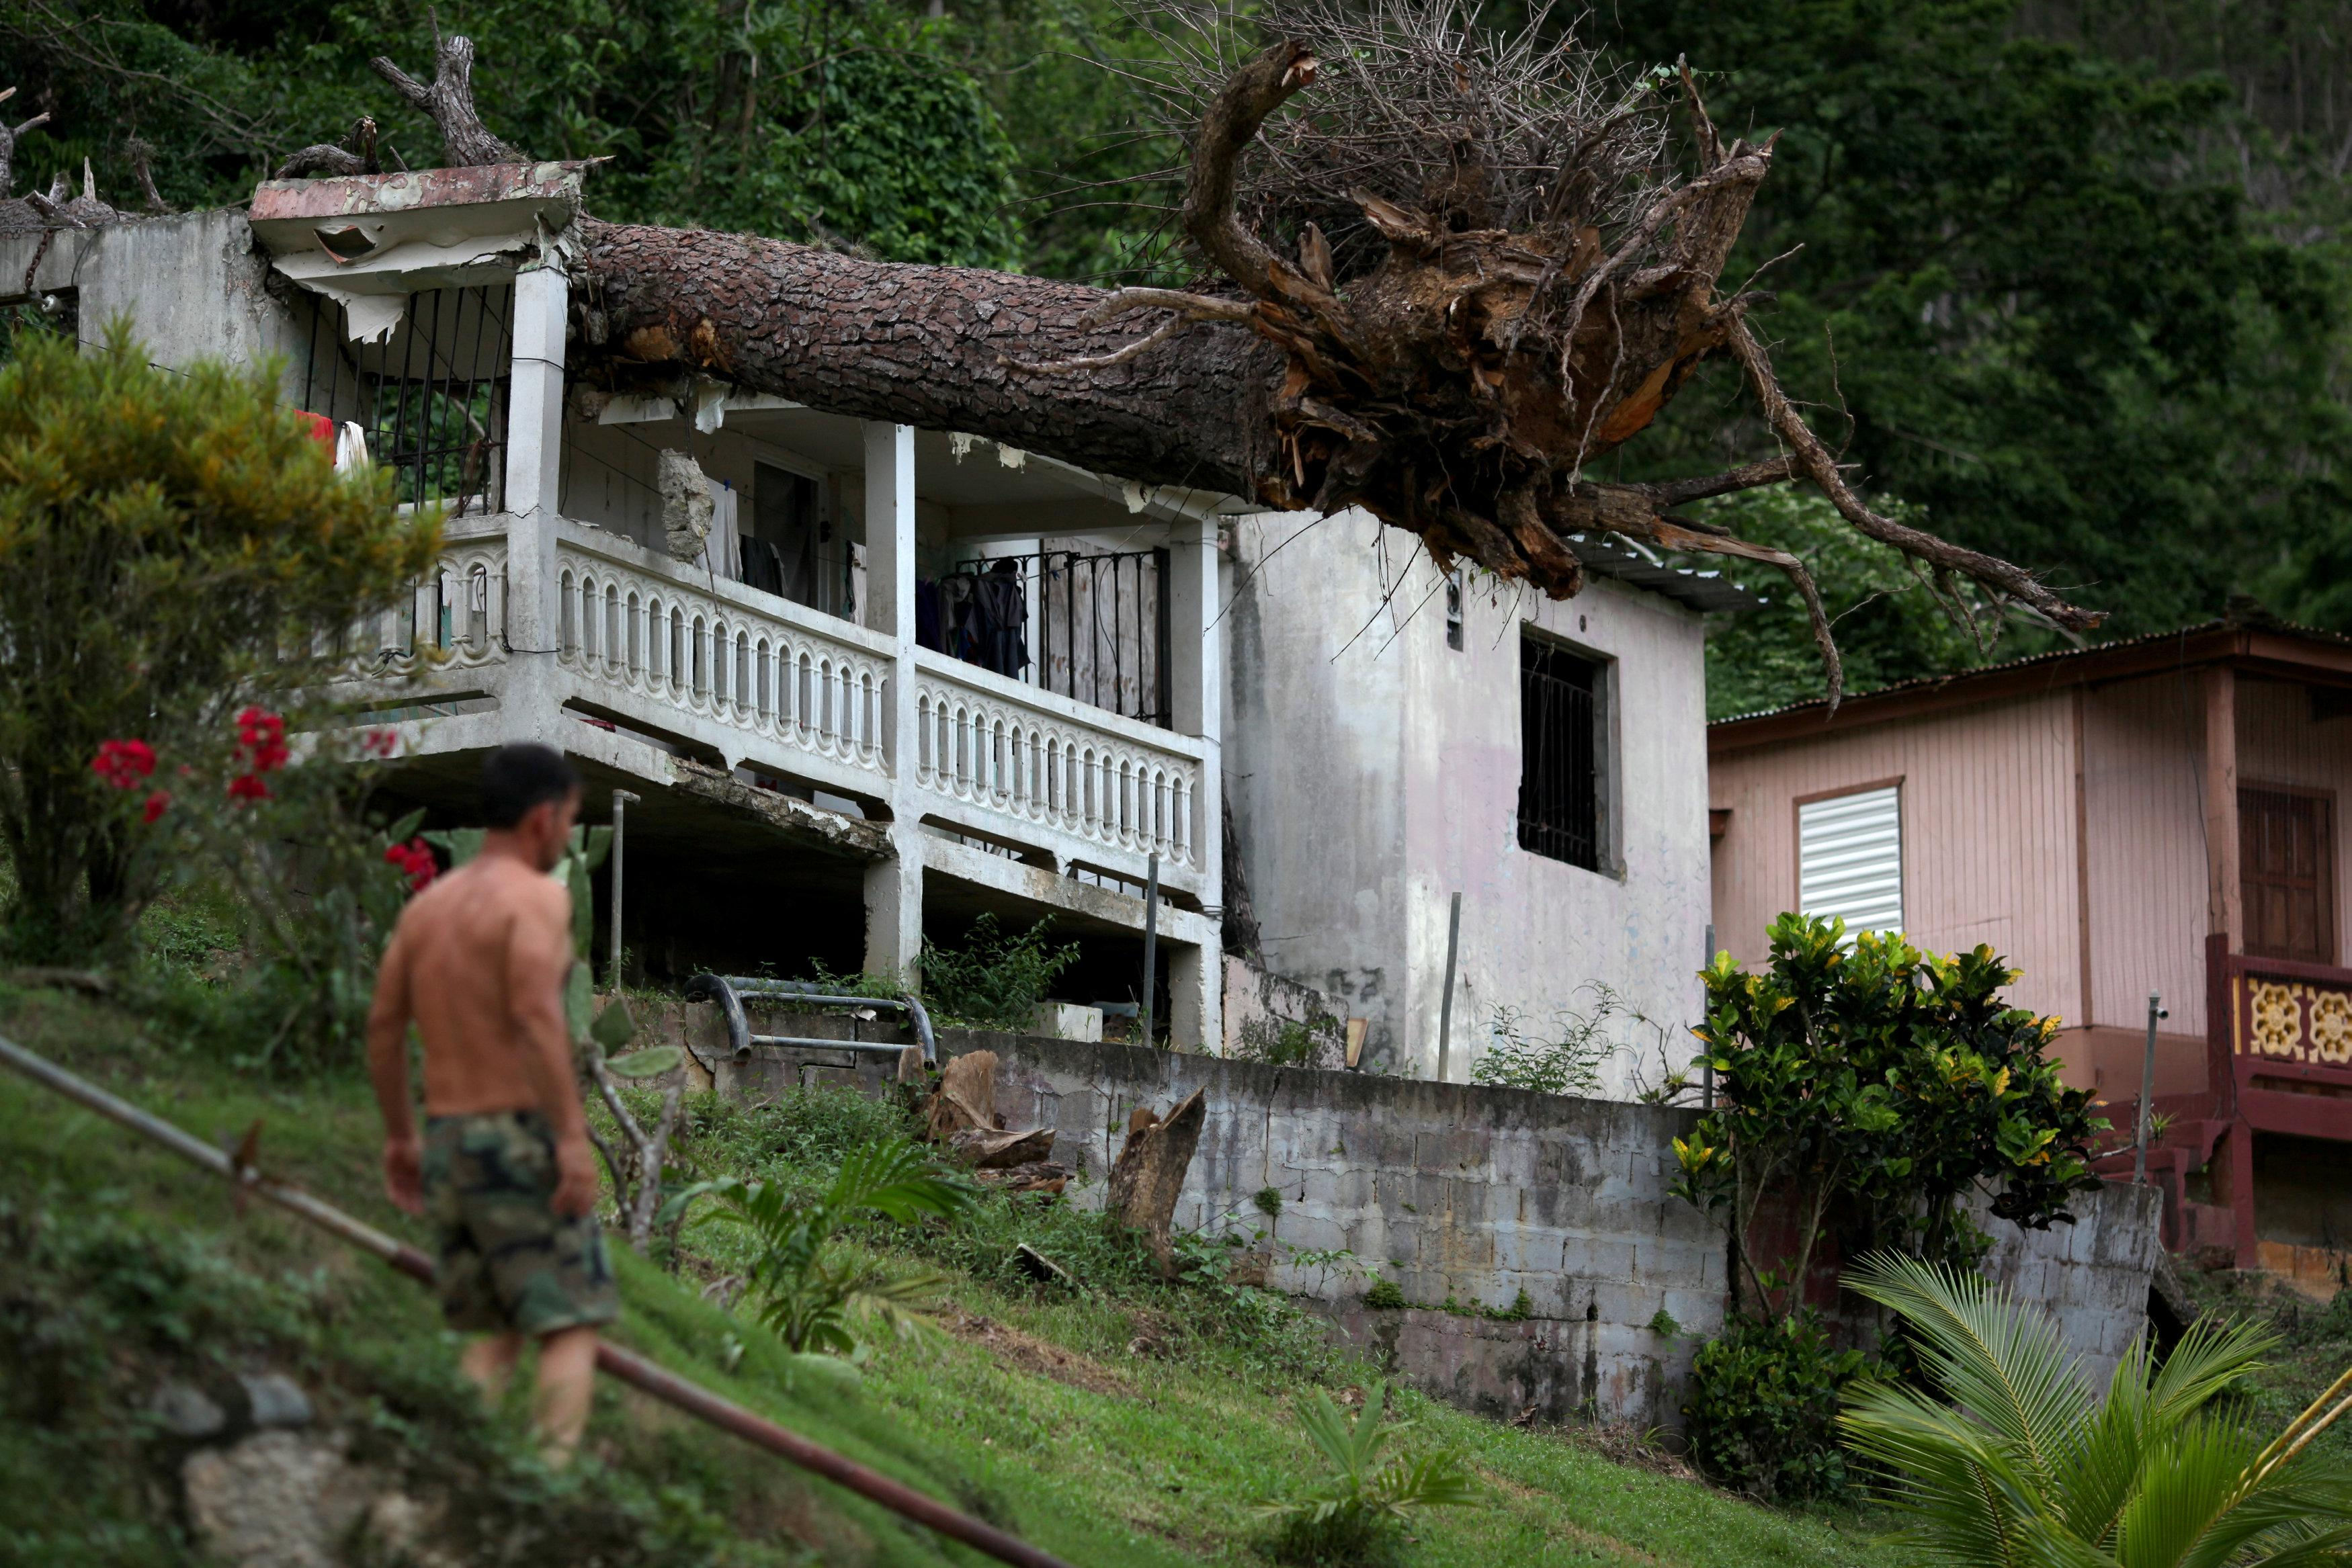 A man stands near a house with a fallen tree on its roof, after hurricane Maria hit the area in September, in Utuado, Puerto Rico November 9, 2017. Picture taken November 9, 2017. REUTERS/Alvin Baez